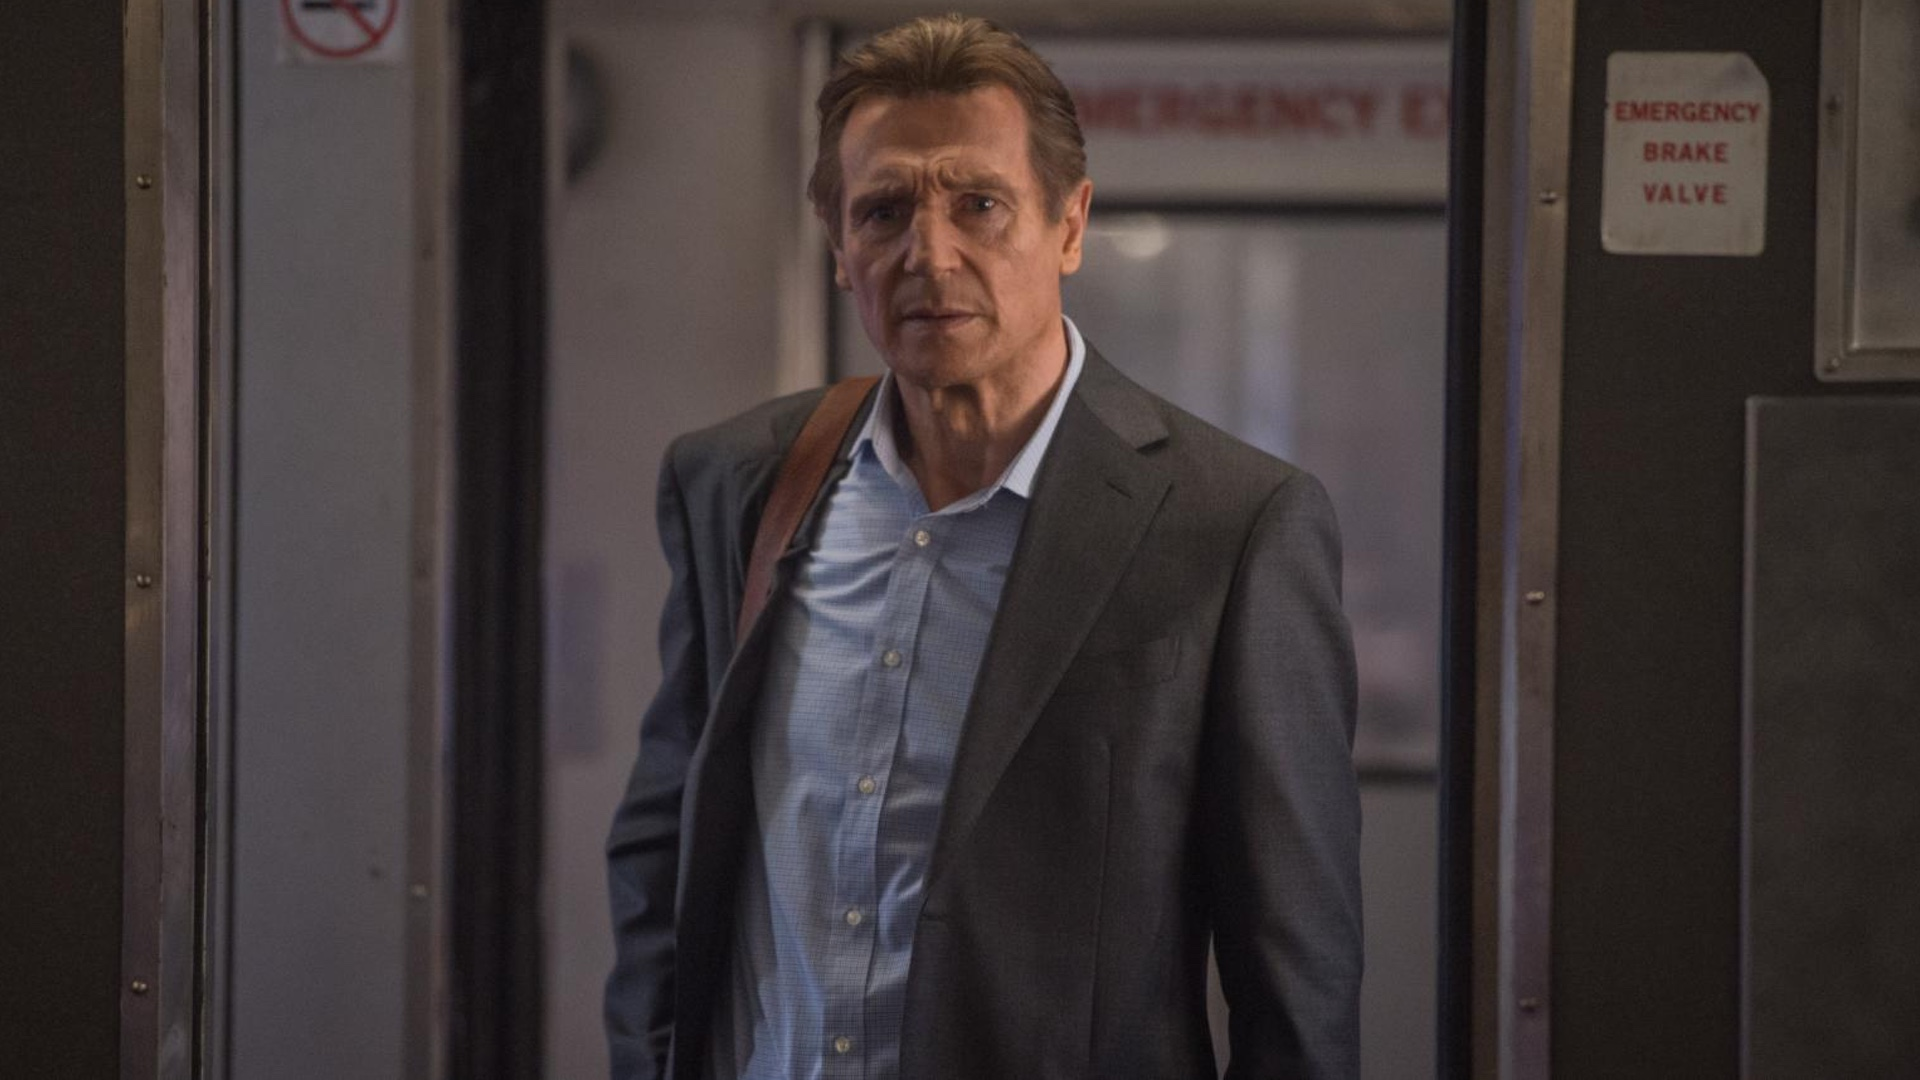 liam-neeson-to-star-in-honest-thief-from-the-co-creator-of-netflixs-ozark-social.jpg